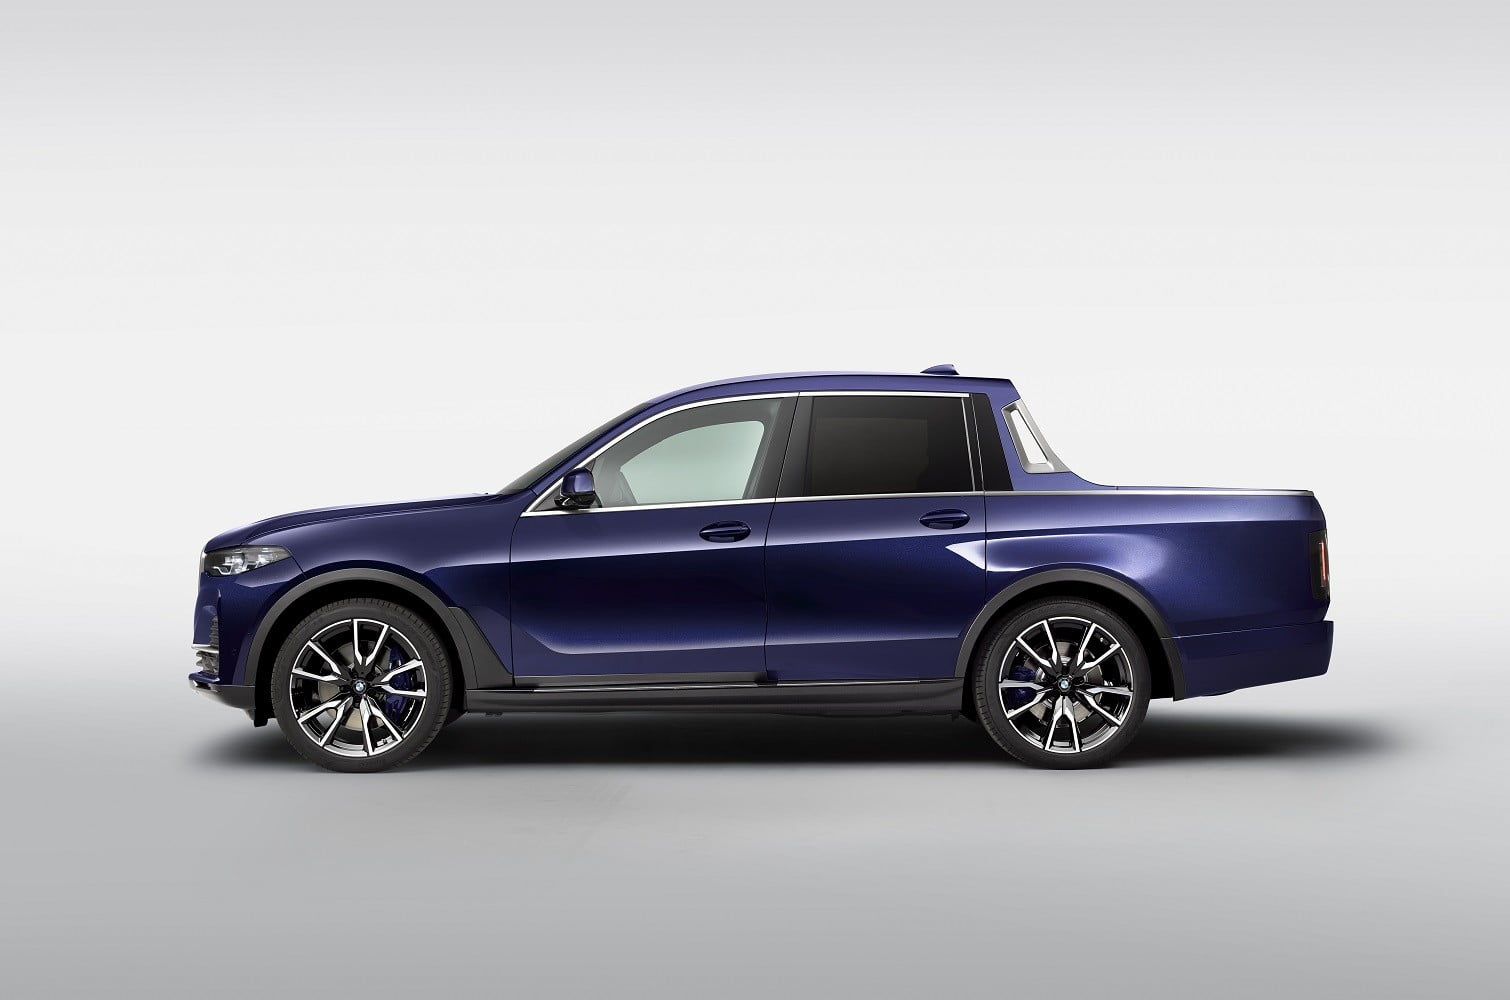 2019 bmw x7 pickup truck concept is perfect for hauling p90357107 highres the 07